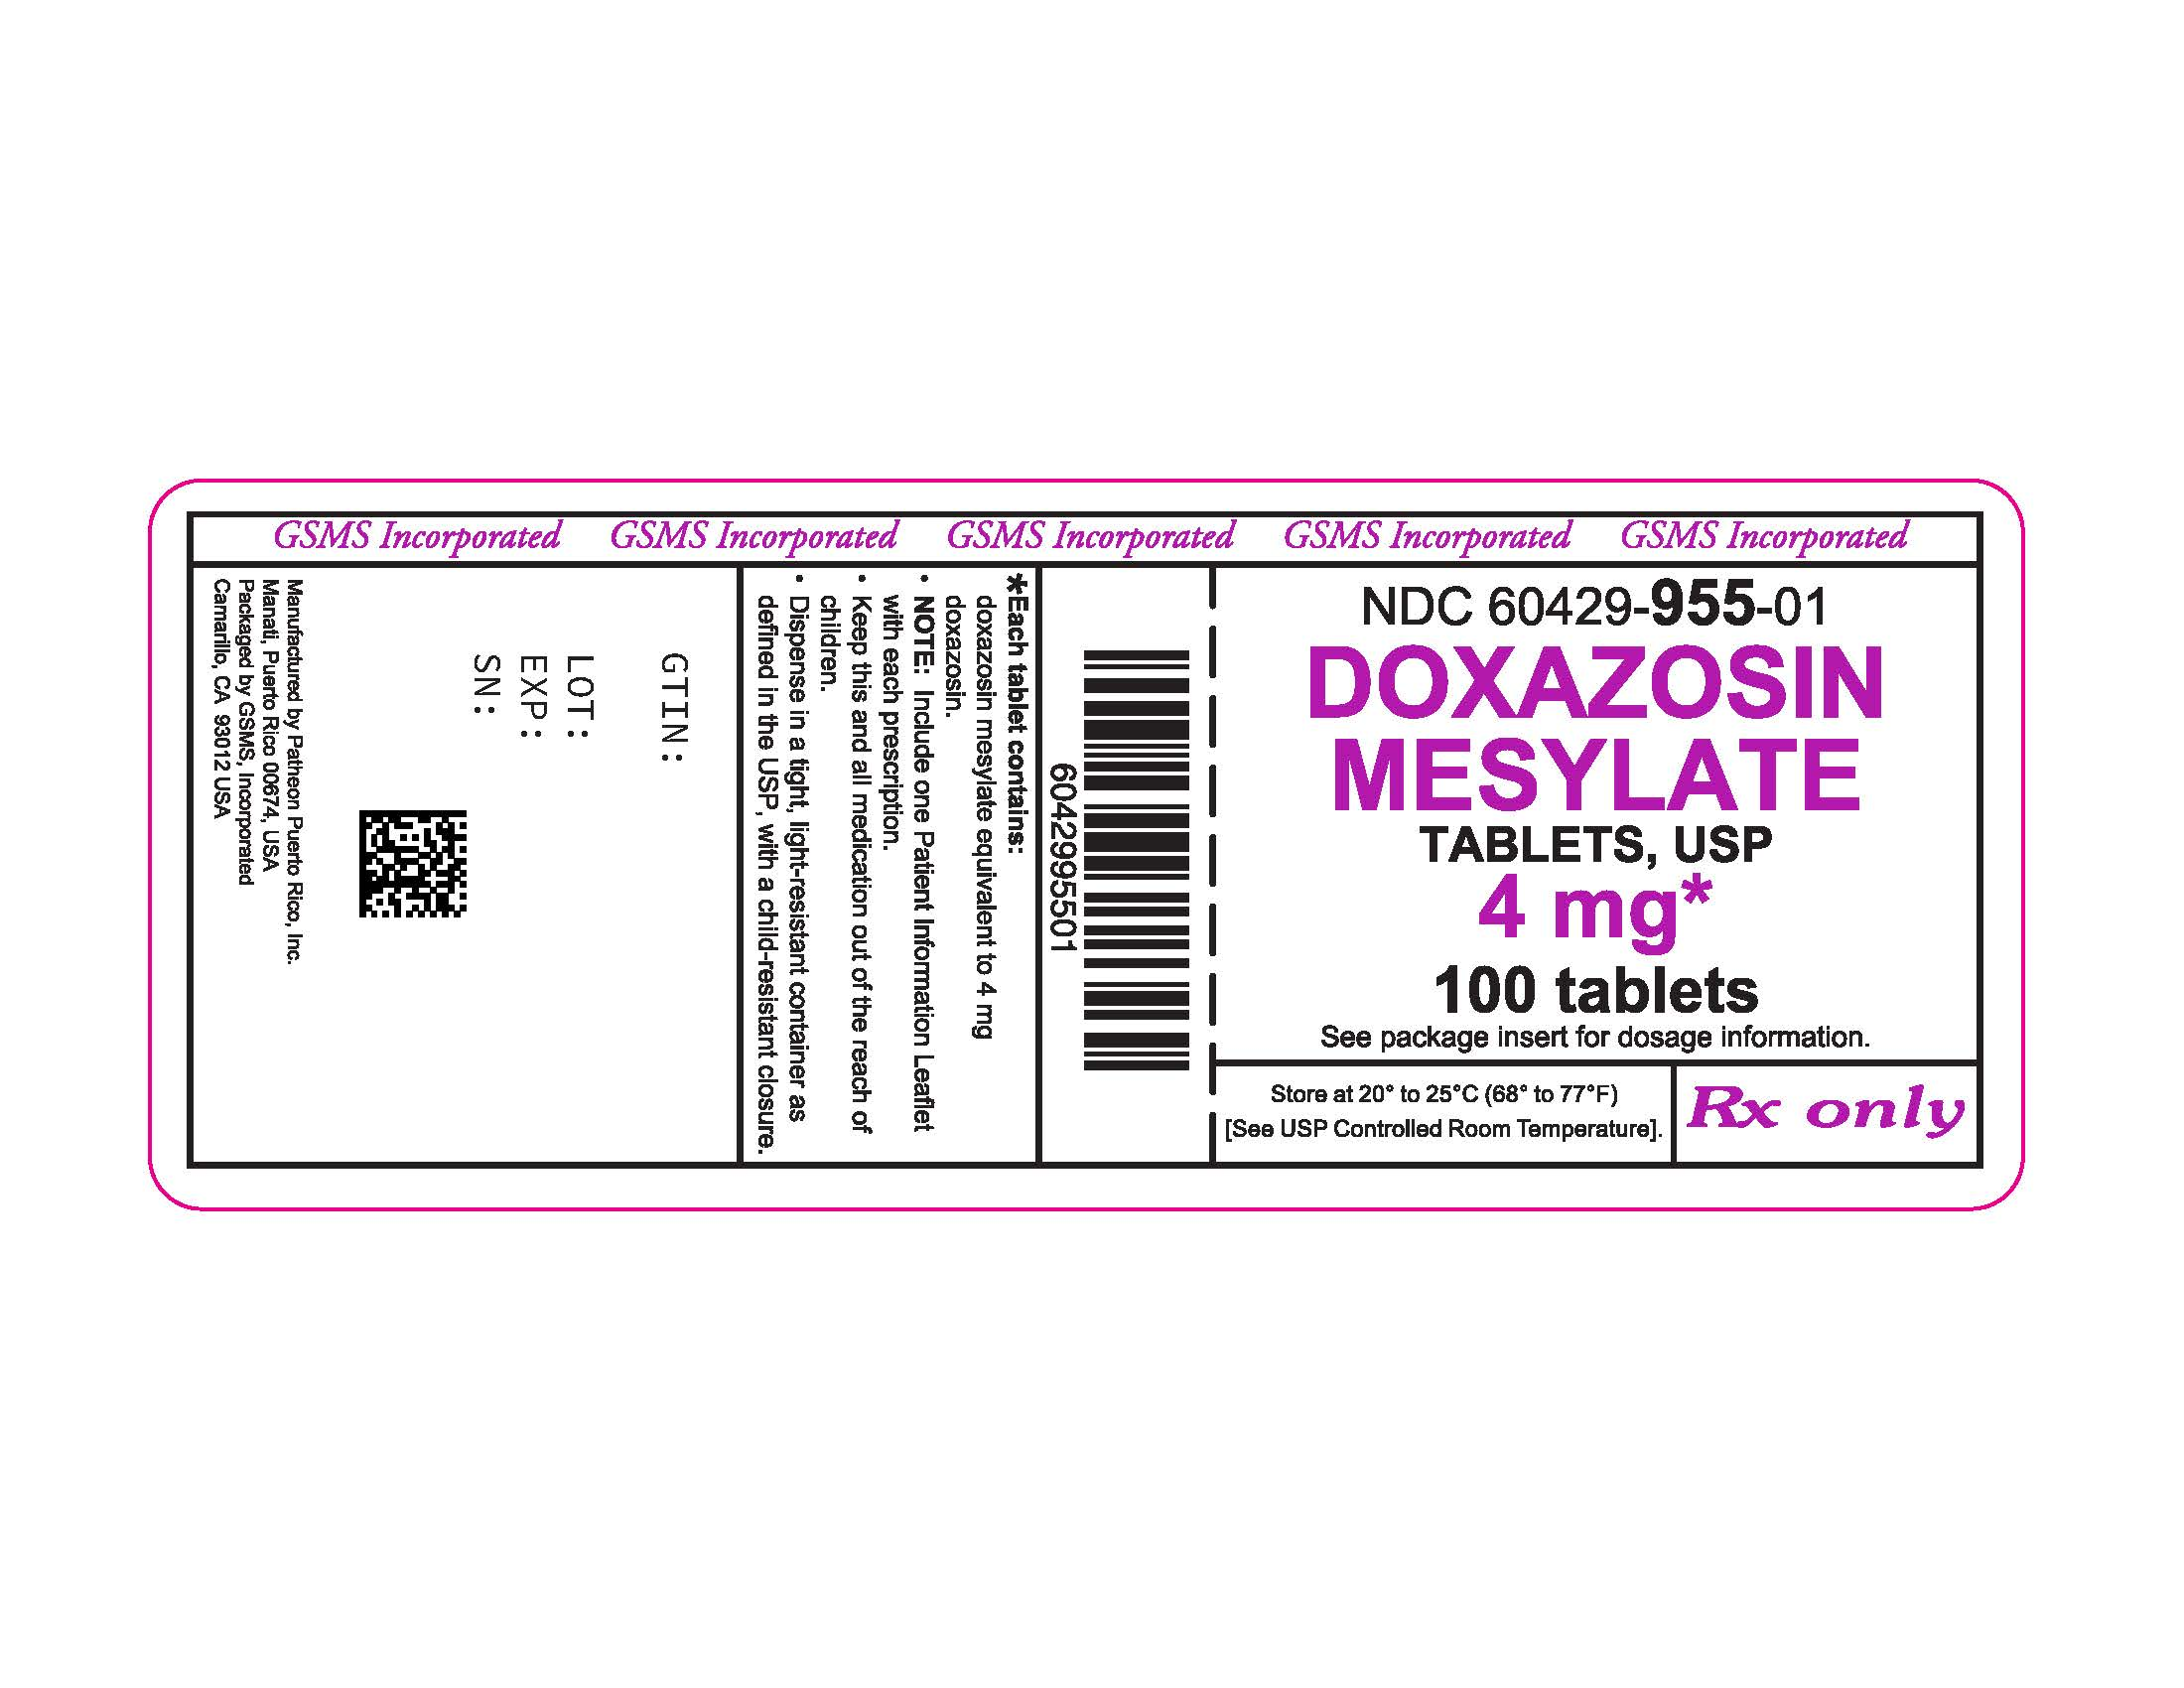 60429-955-01LB - DOXAZOSIN MESYLATE 4 MG TABS - REV JUN 2016 PMG JUN 2016.jpg